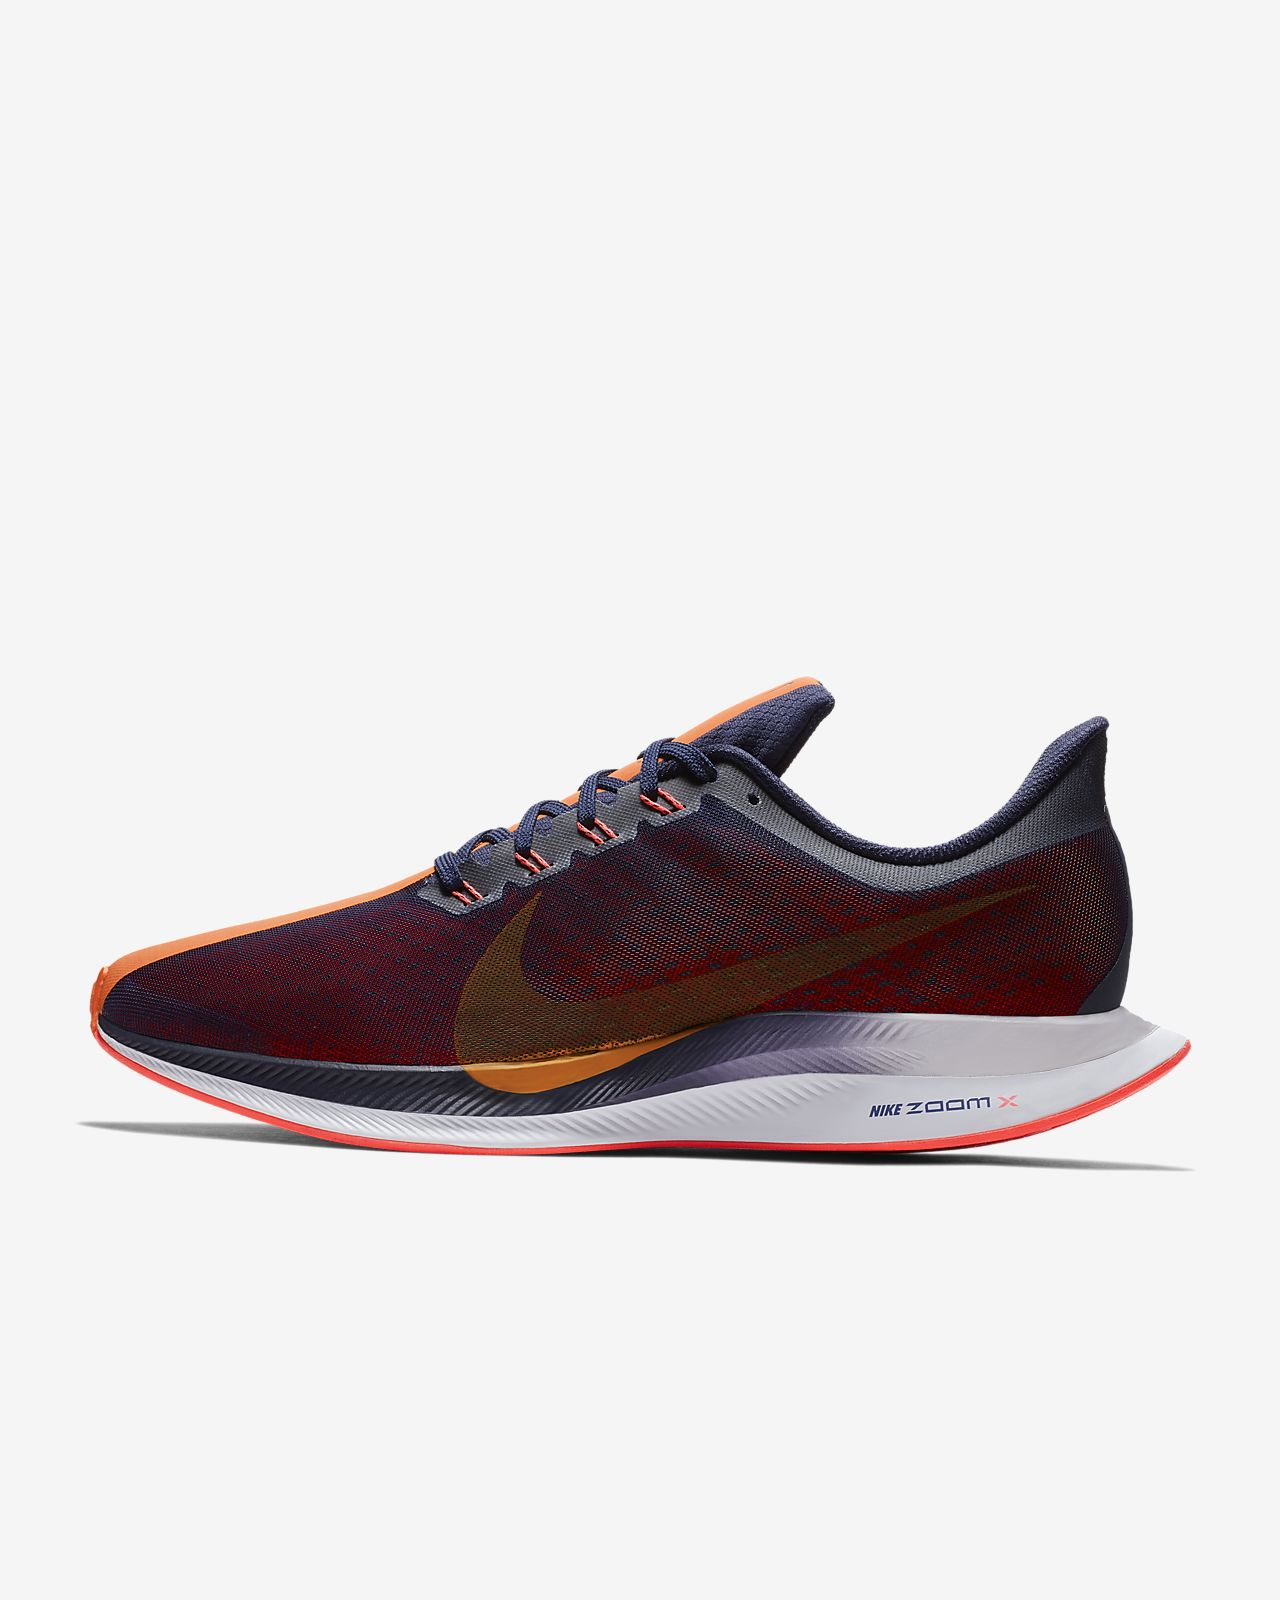 52b5b9d867a7 Nike Zoom Pegasus Turbo Men s Running Shoe. Nike.com